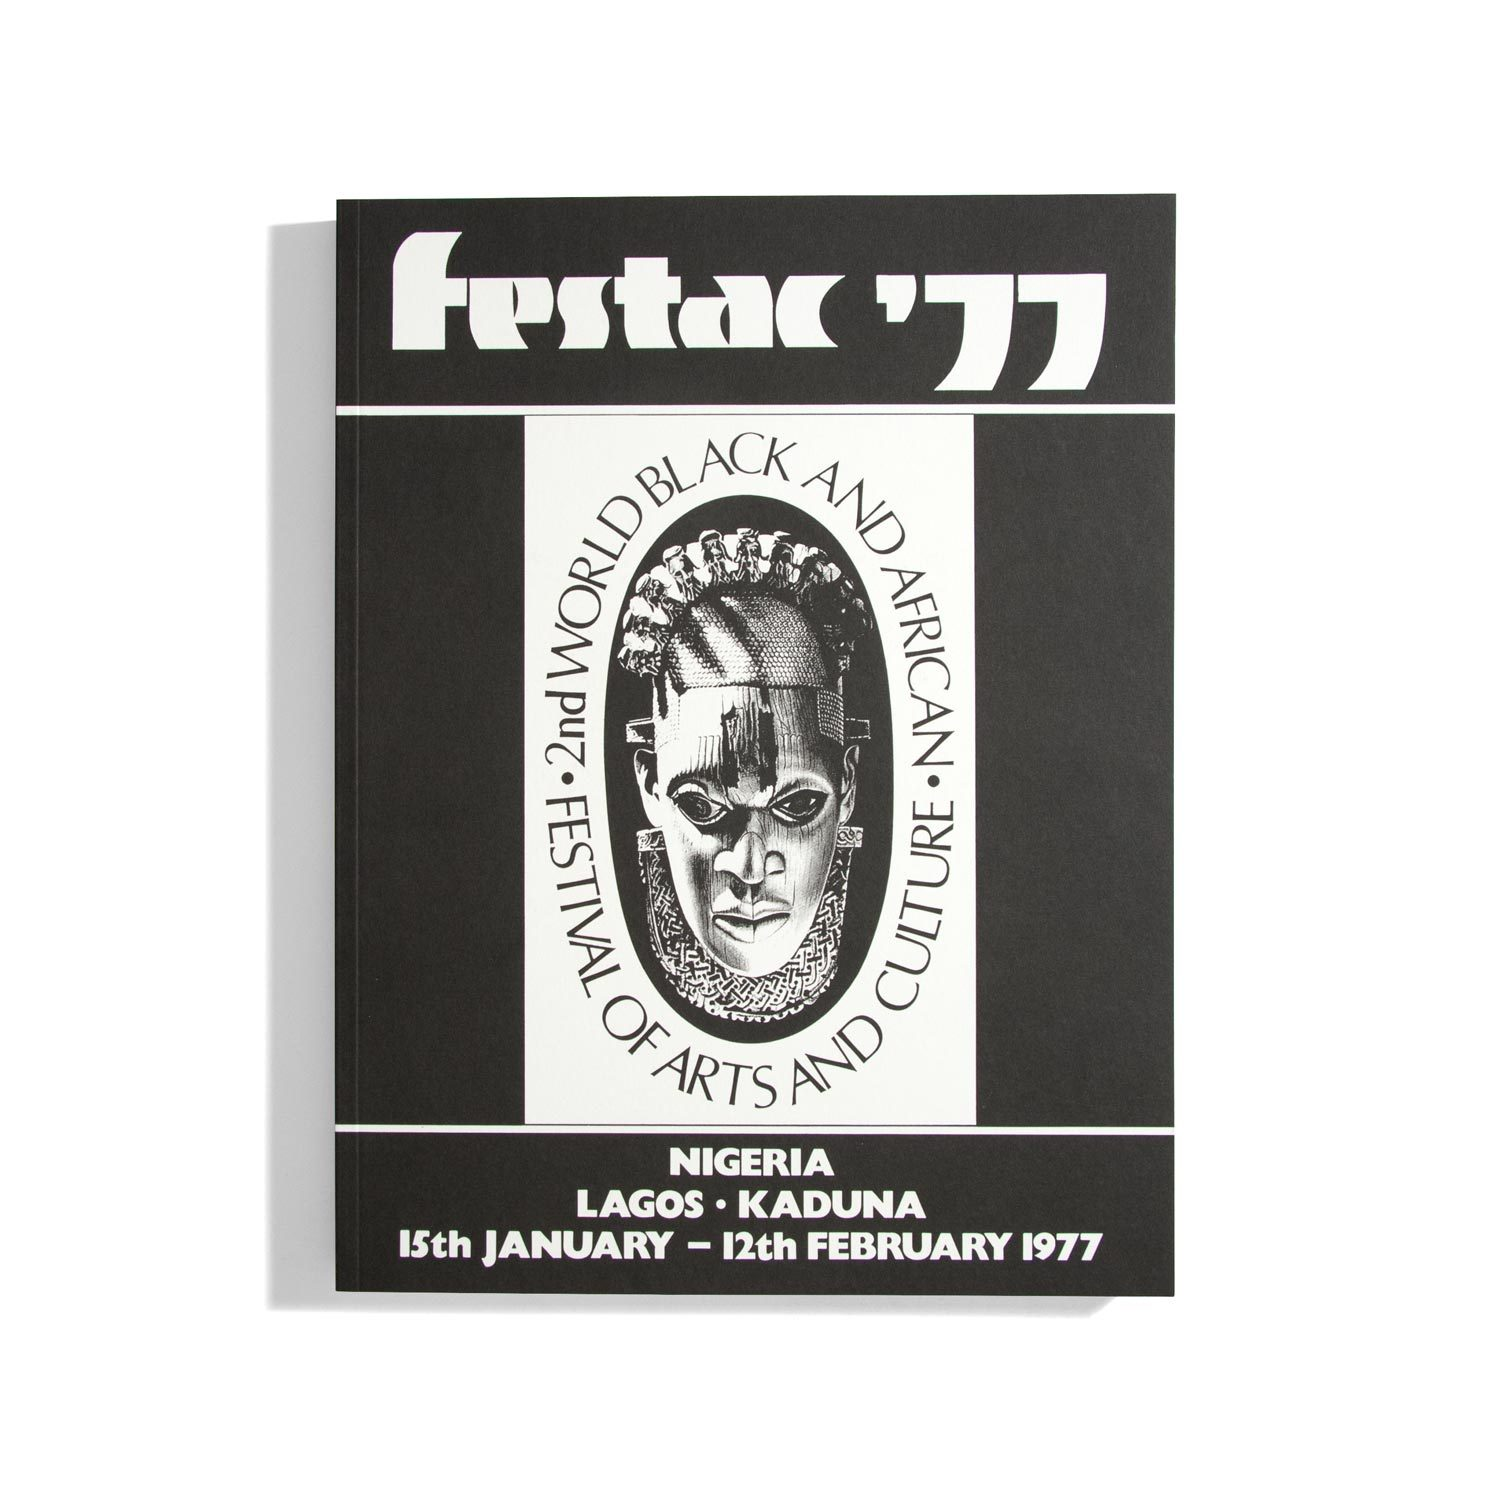 Festac '77: The 2nd World Festival of Black Arts and Culture